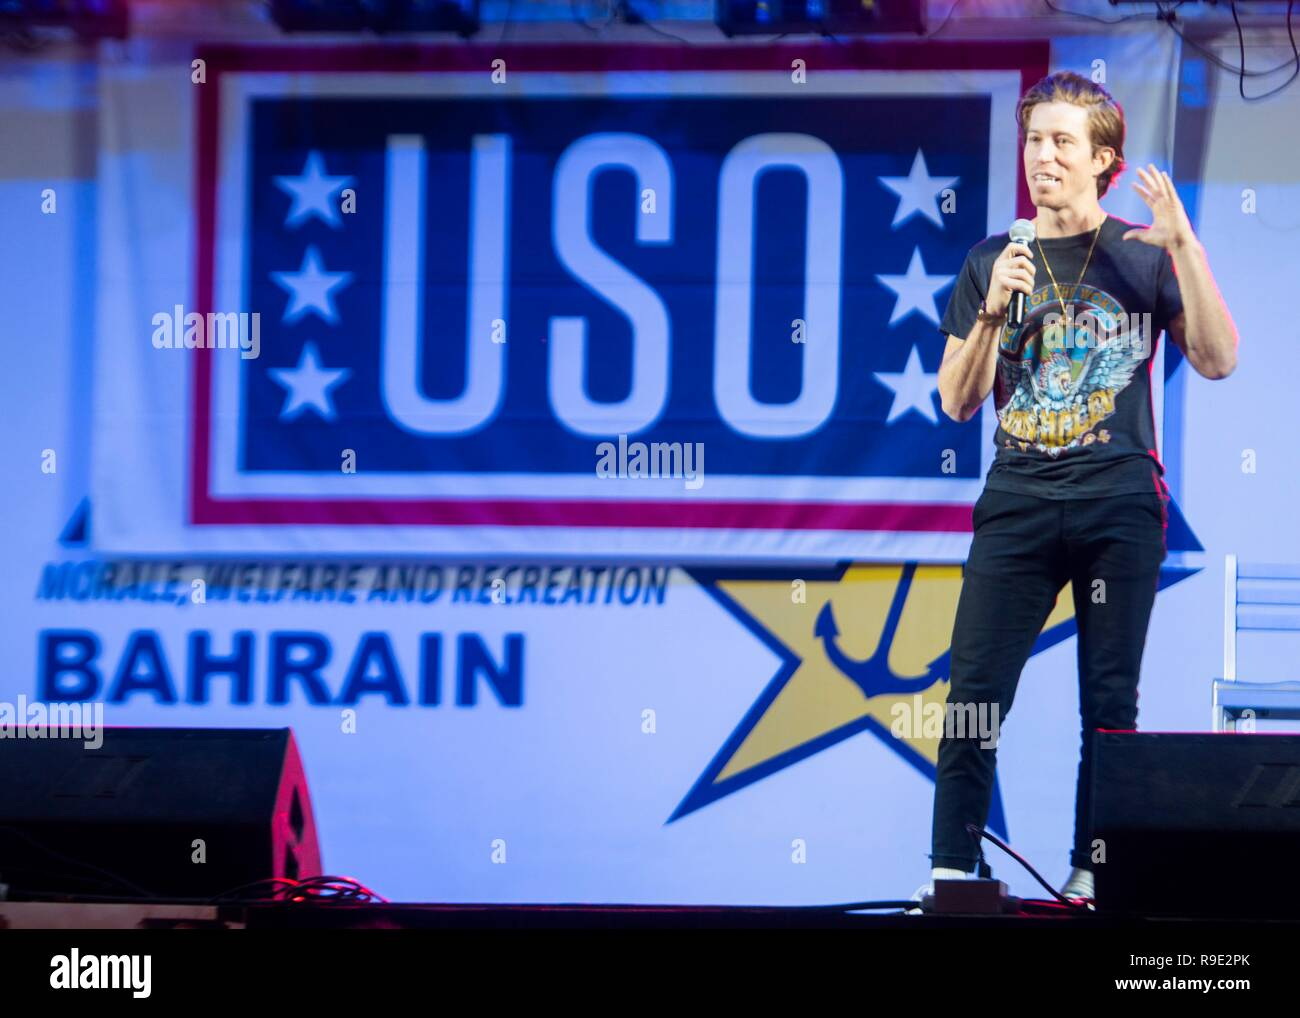 Manama, Bahrain. 21st Dec, 2018. Three-time Olympic gold medalist Shaun White takes part in the Joint Chiefs USO Christmas Show for deployed service members at Naval Support Activity Bahrain December 22, 2018 in Manama, Bahrain. This year's entertainers include actors Milo Ventimiglia, Wilmer Valderrama, DJ J Dayz, Fittest Man on Earth Matt Fraser, 3-time Olympic Gold Medalist Shaun White, Country Music Singer Kellie Pickler, and comedian Jessiemae Peluso. Credit: Planetpix/Alamy Live News - Stock Image